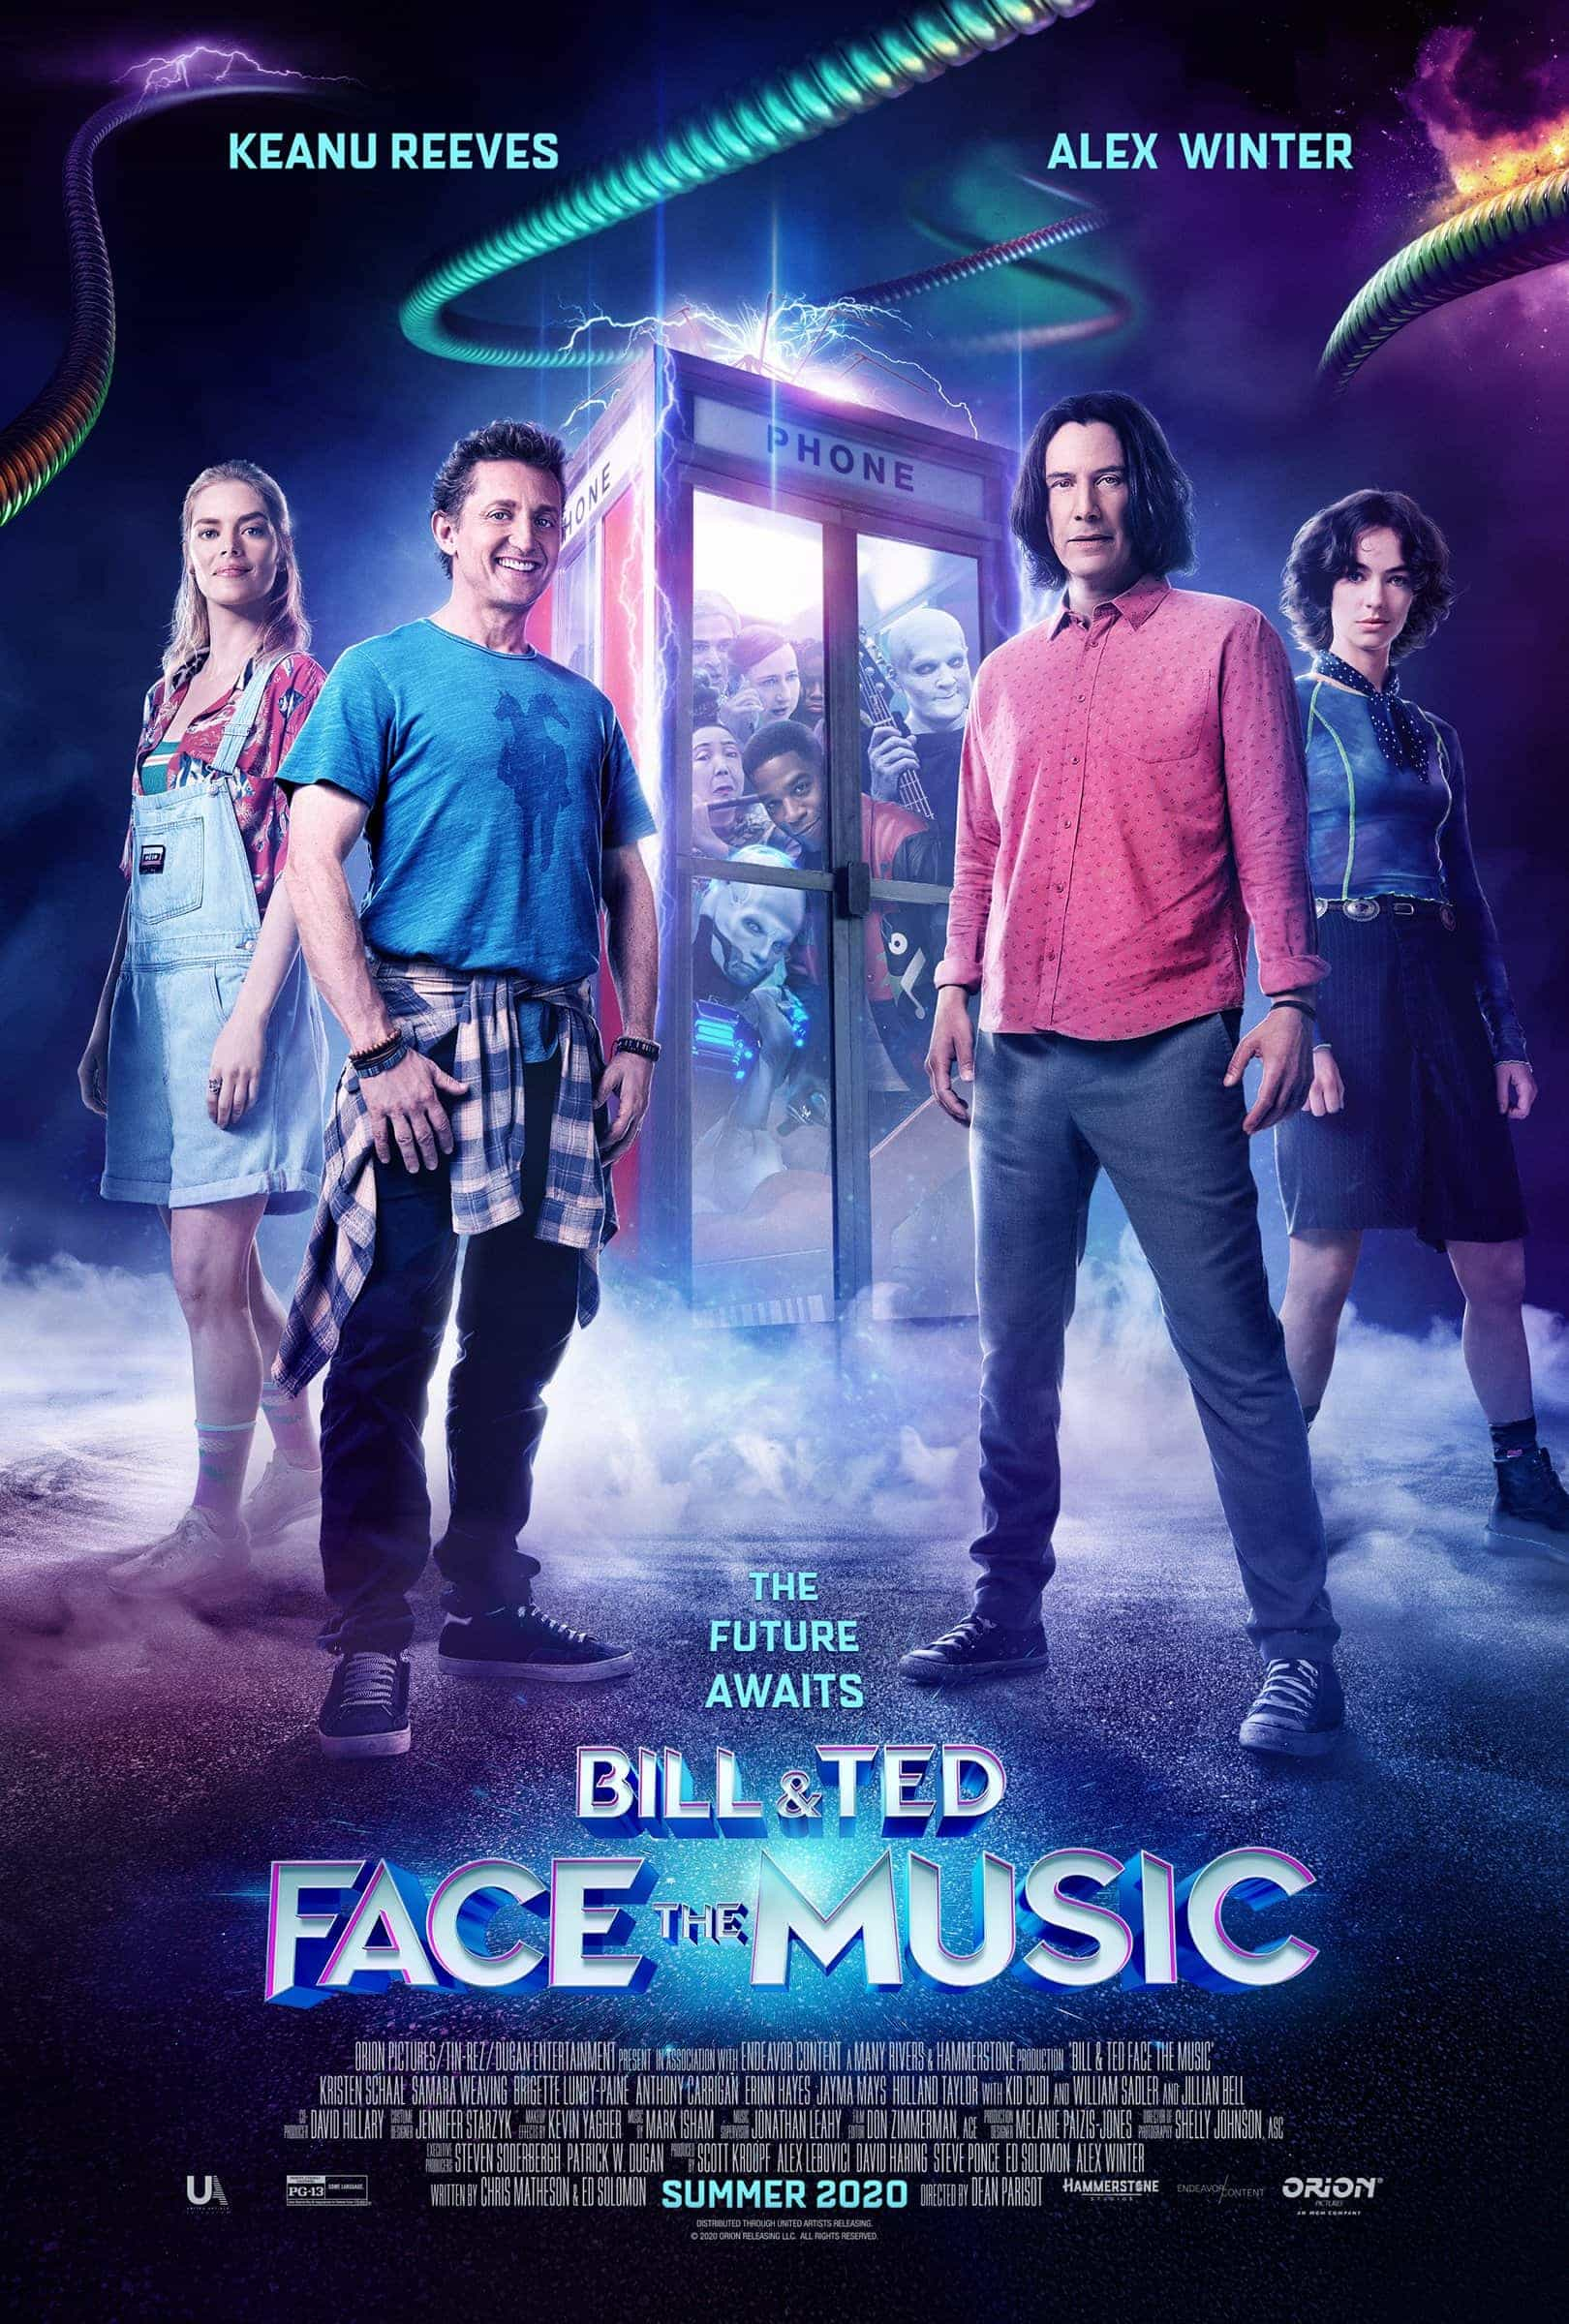 New UK movie releases, Weekend Friday 18th September 2020:  With Tenet remaining at the top can Bill And Ted replace them on their debut